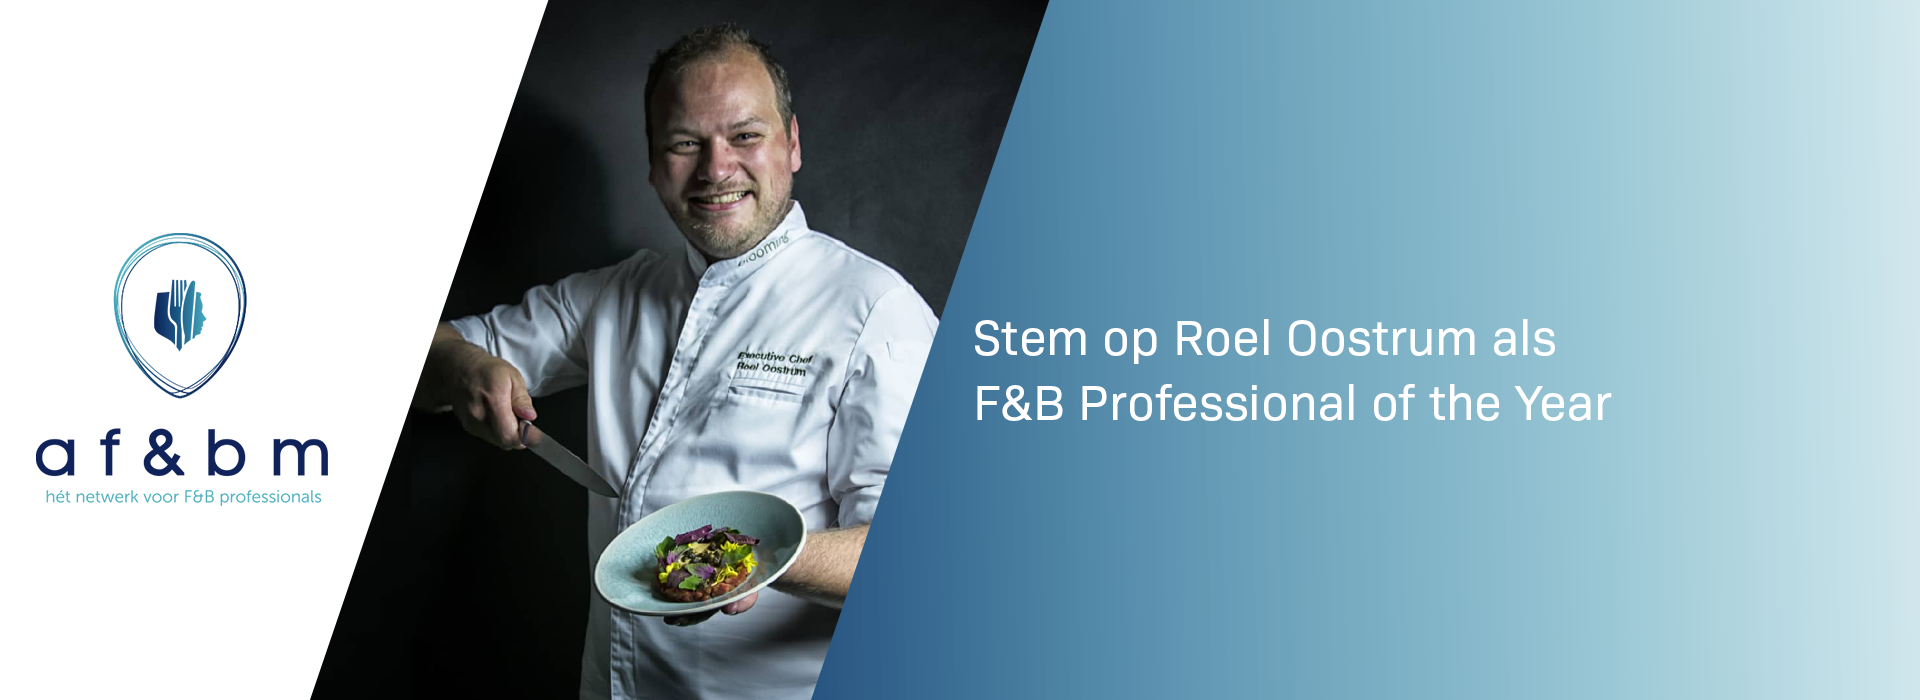 roel oostrum f&b professional of the year